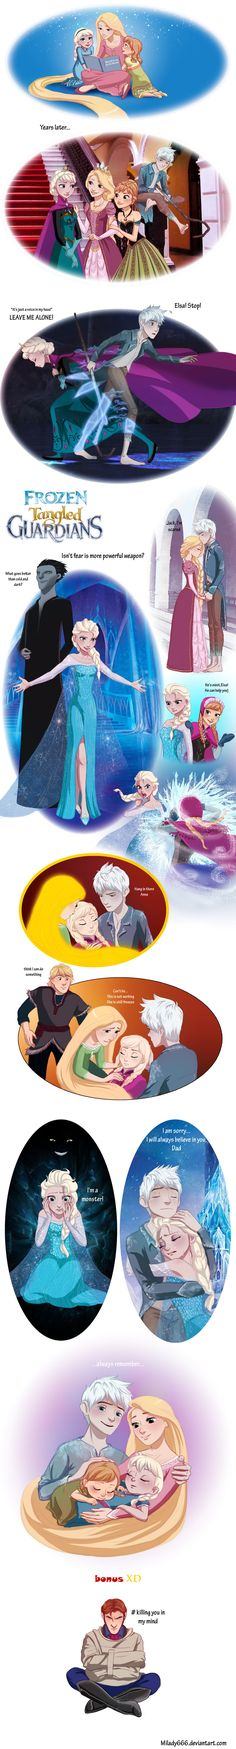 Frozen Tangled Guardians Story